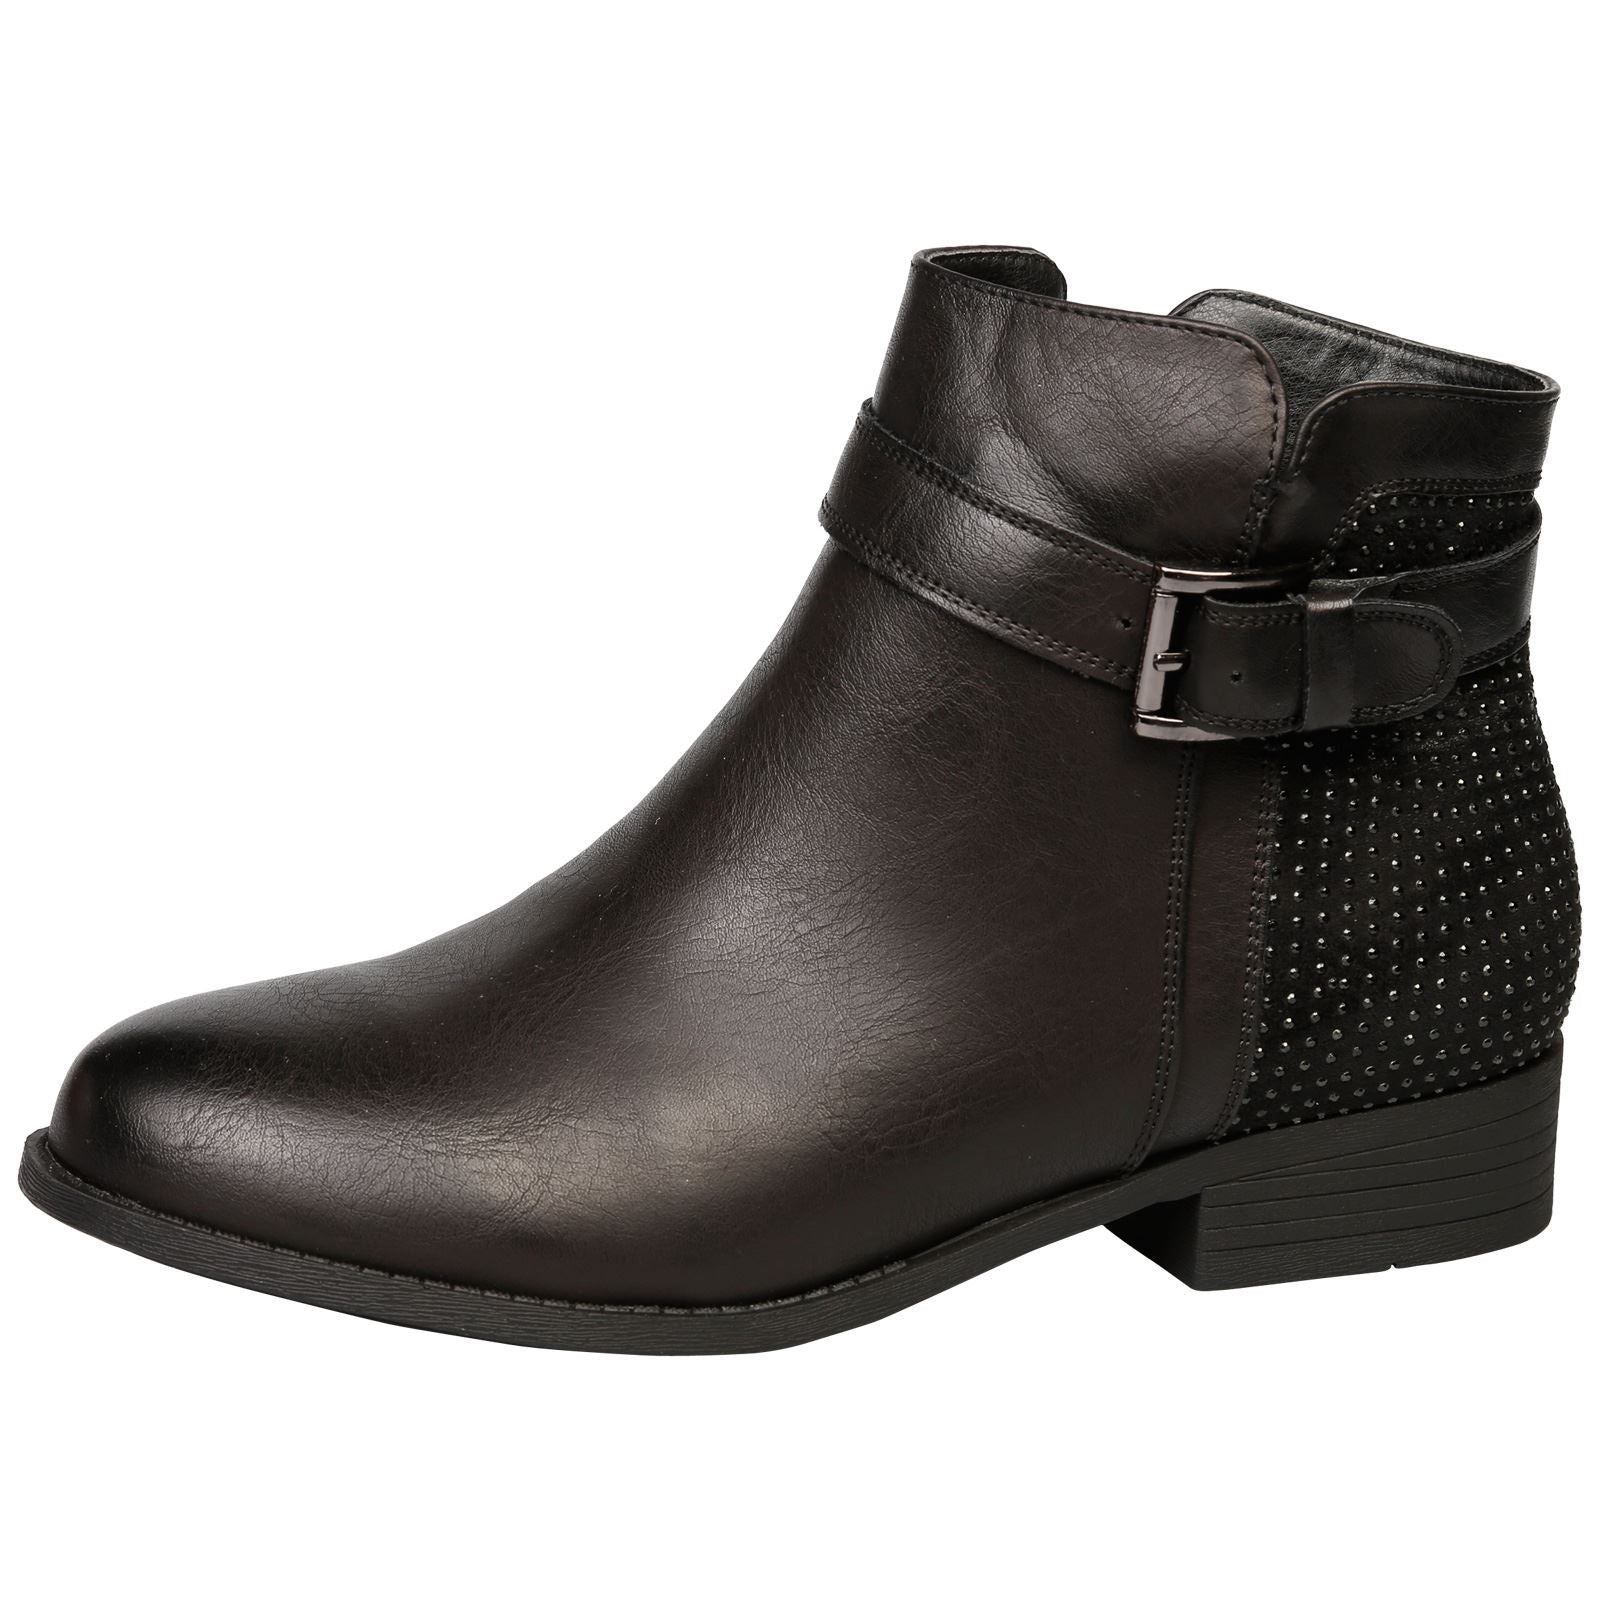 Amirah Diamante Ankle Boots in Black - Feet First Fashion